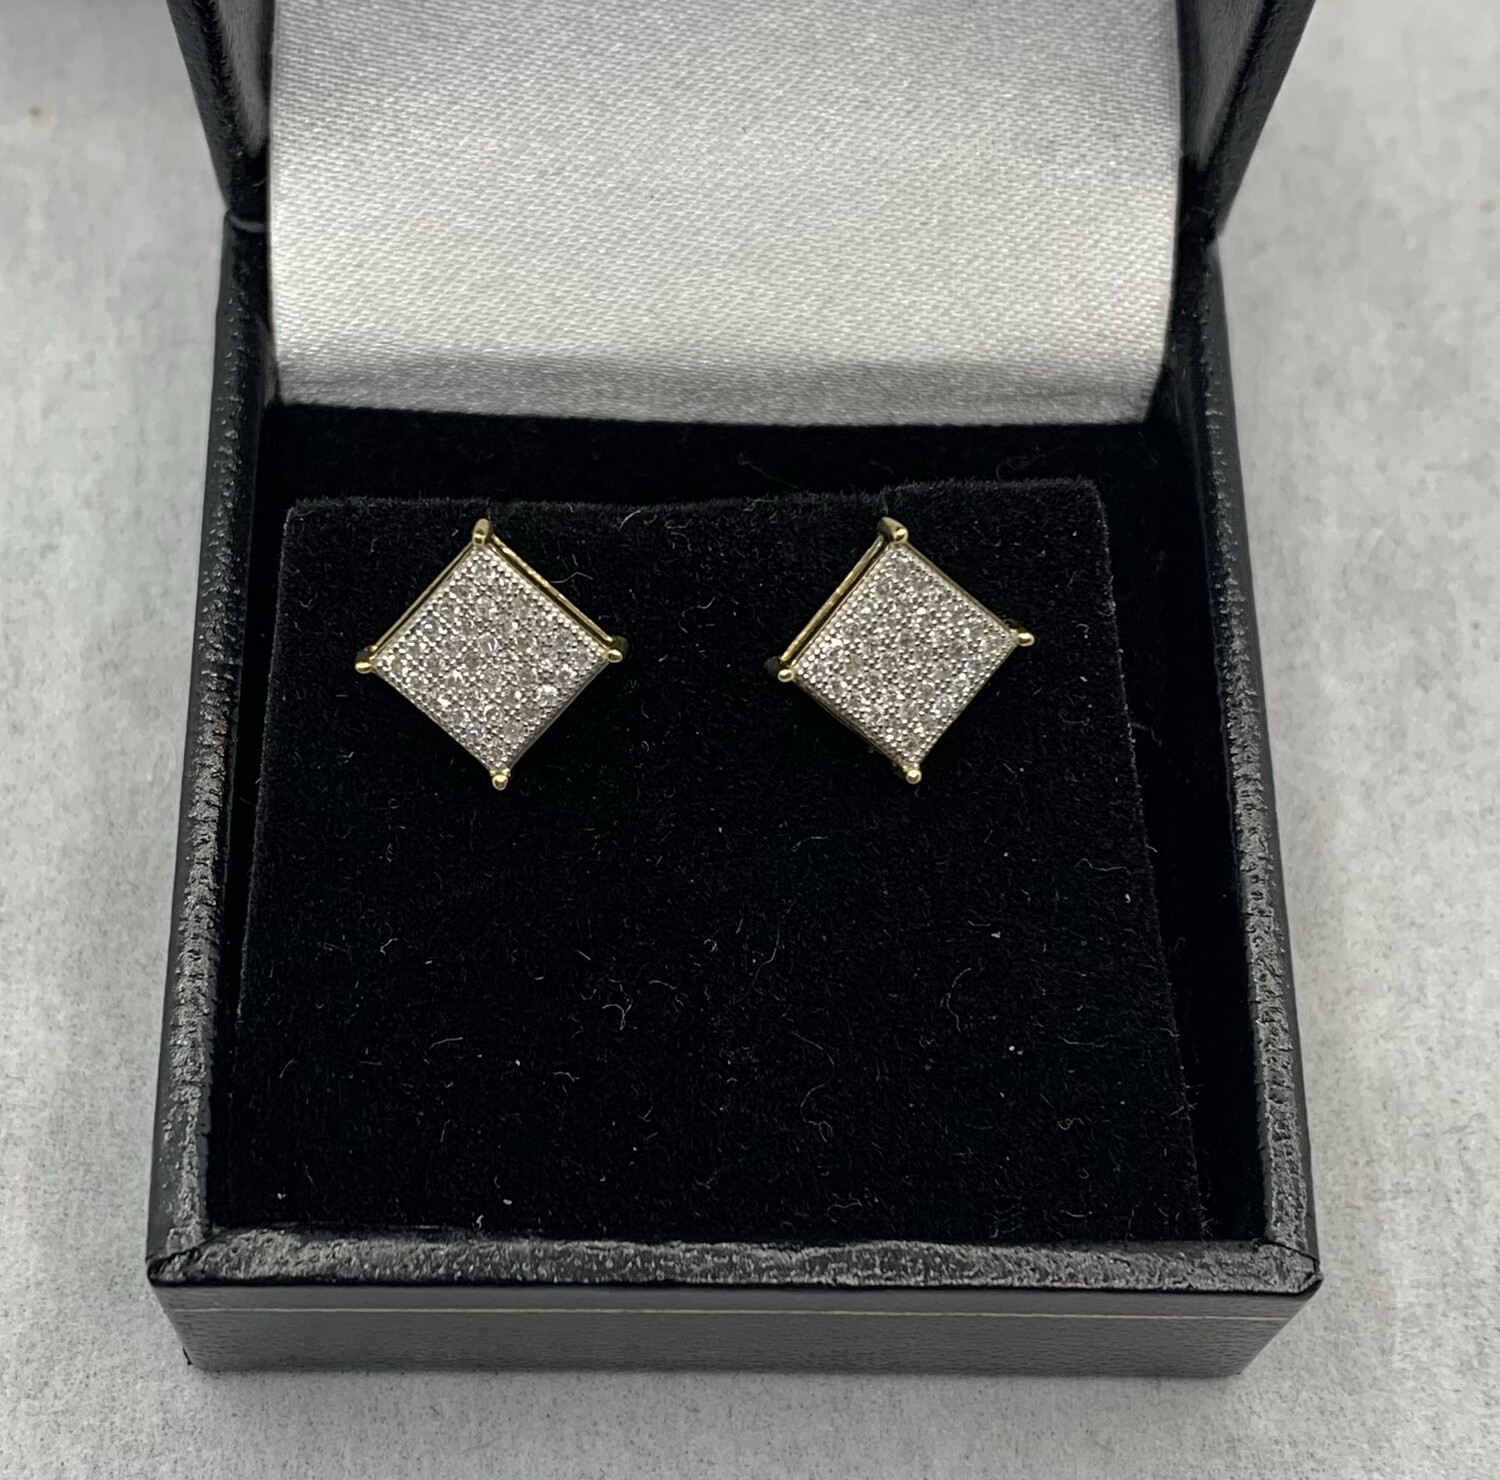 10kt Yellow Gold 25 Pt Diamond Grid Square Post Earrings